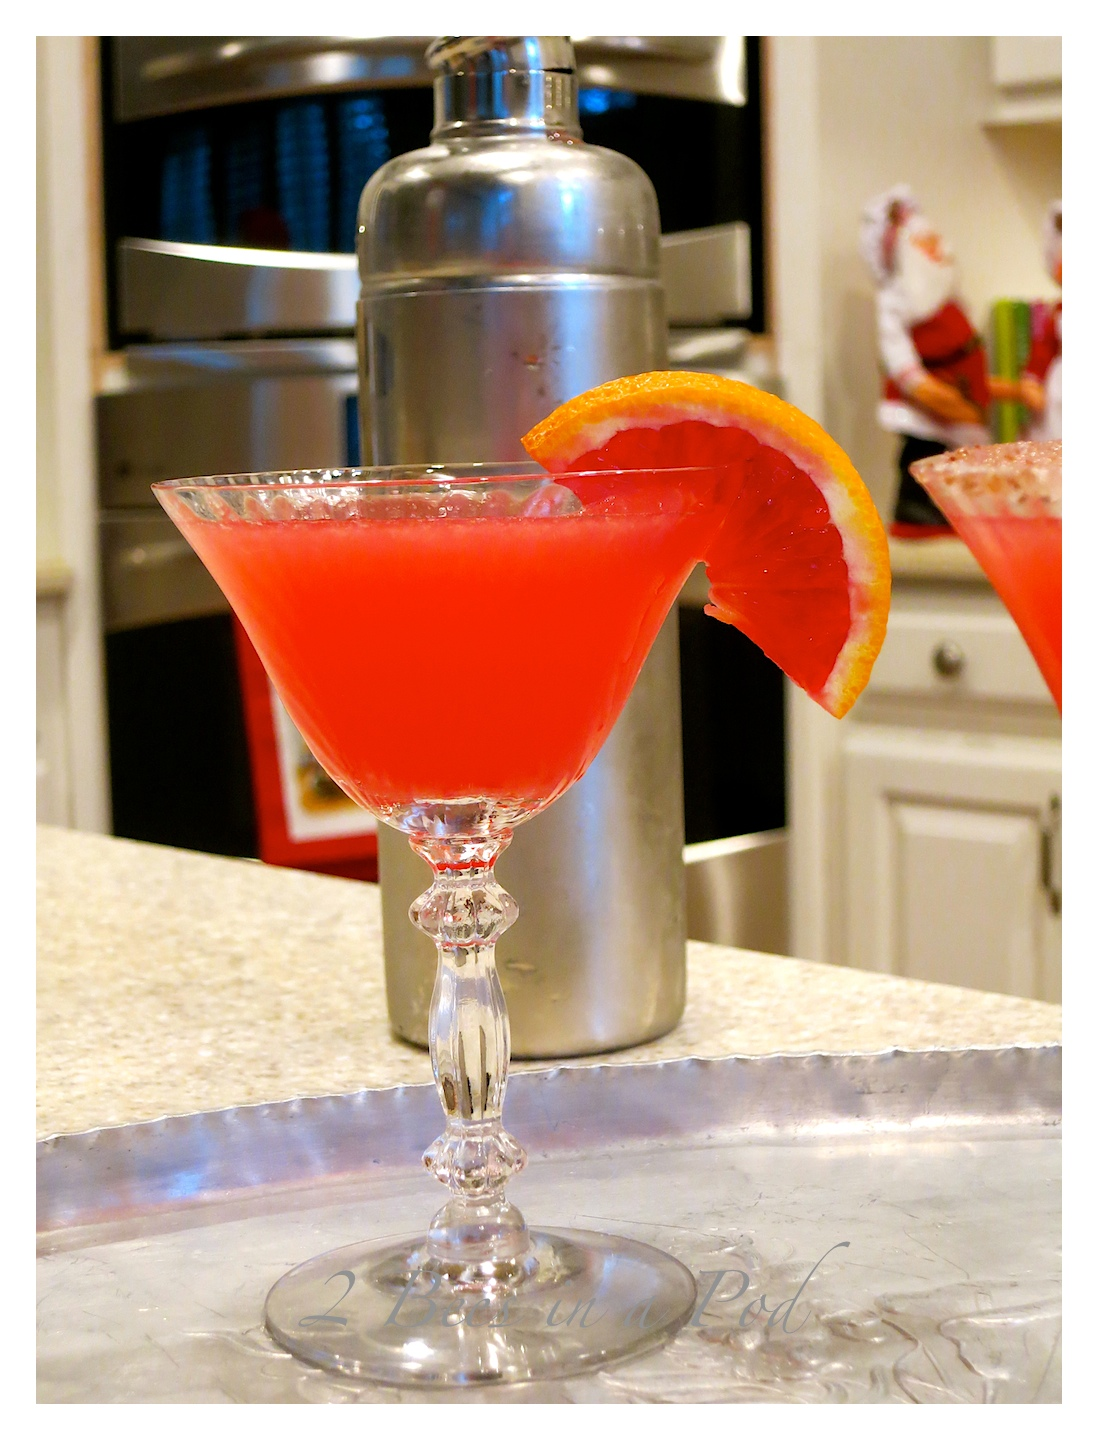 Yummy Blood Orange Martini - the perfect Christmas cocktail. Fresh squeezed Blood Orange juice, vodka, orange liquor and simple syrup.